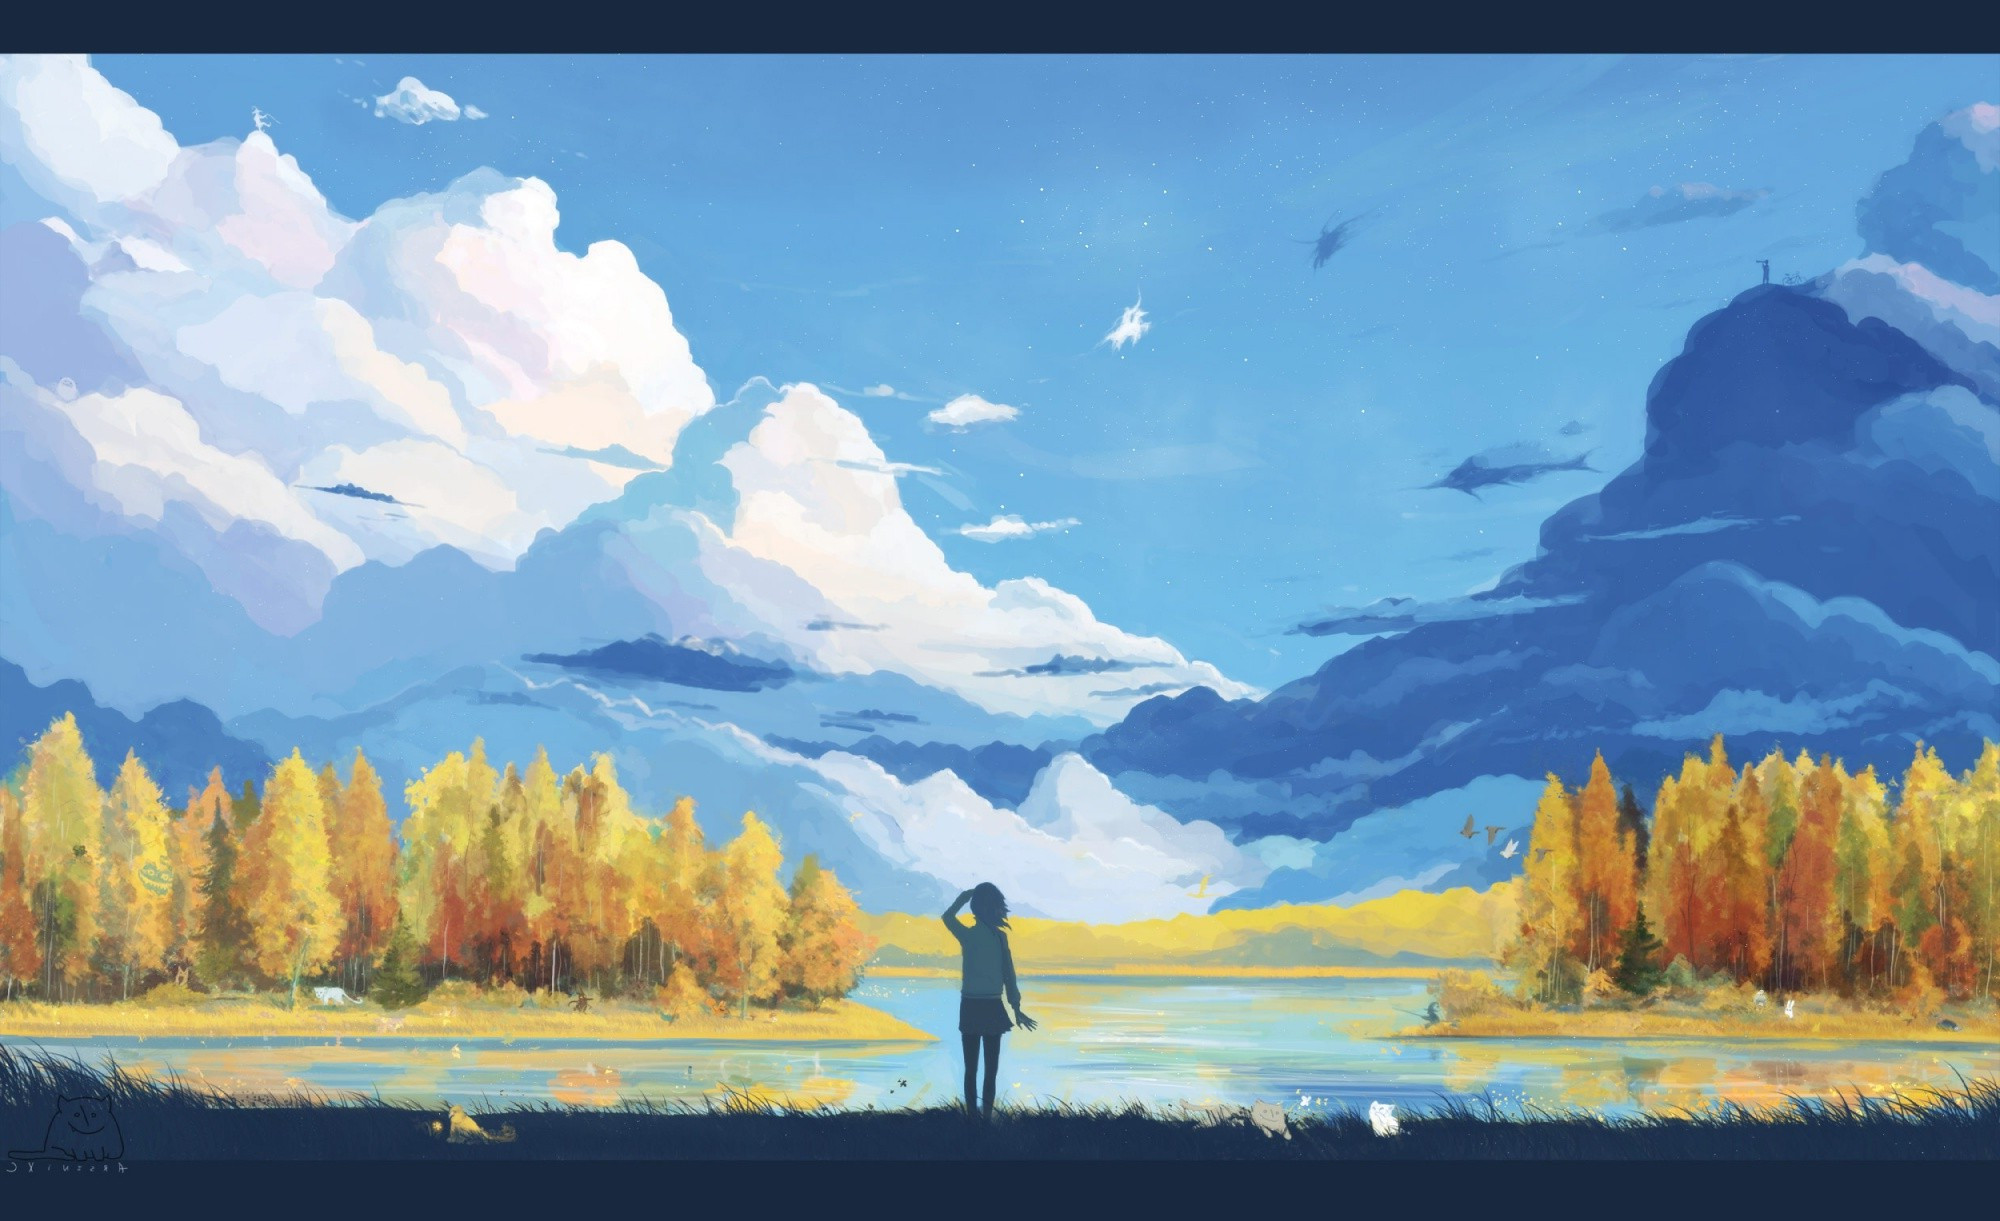 Best ideas about Anime Landscape Wallpaper . Save or Pin anime Landscape Nature Fantasy Art Minimalism Now.